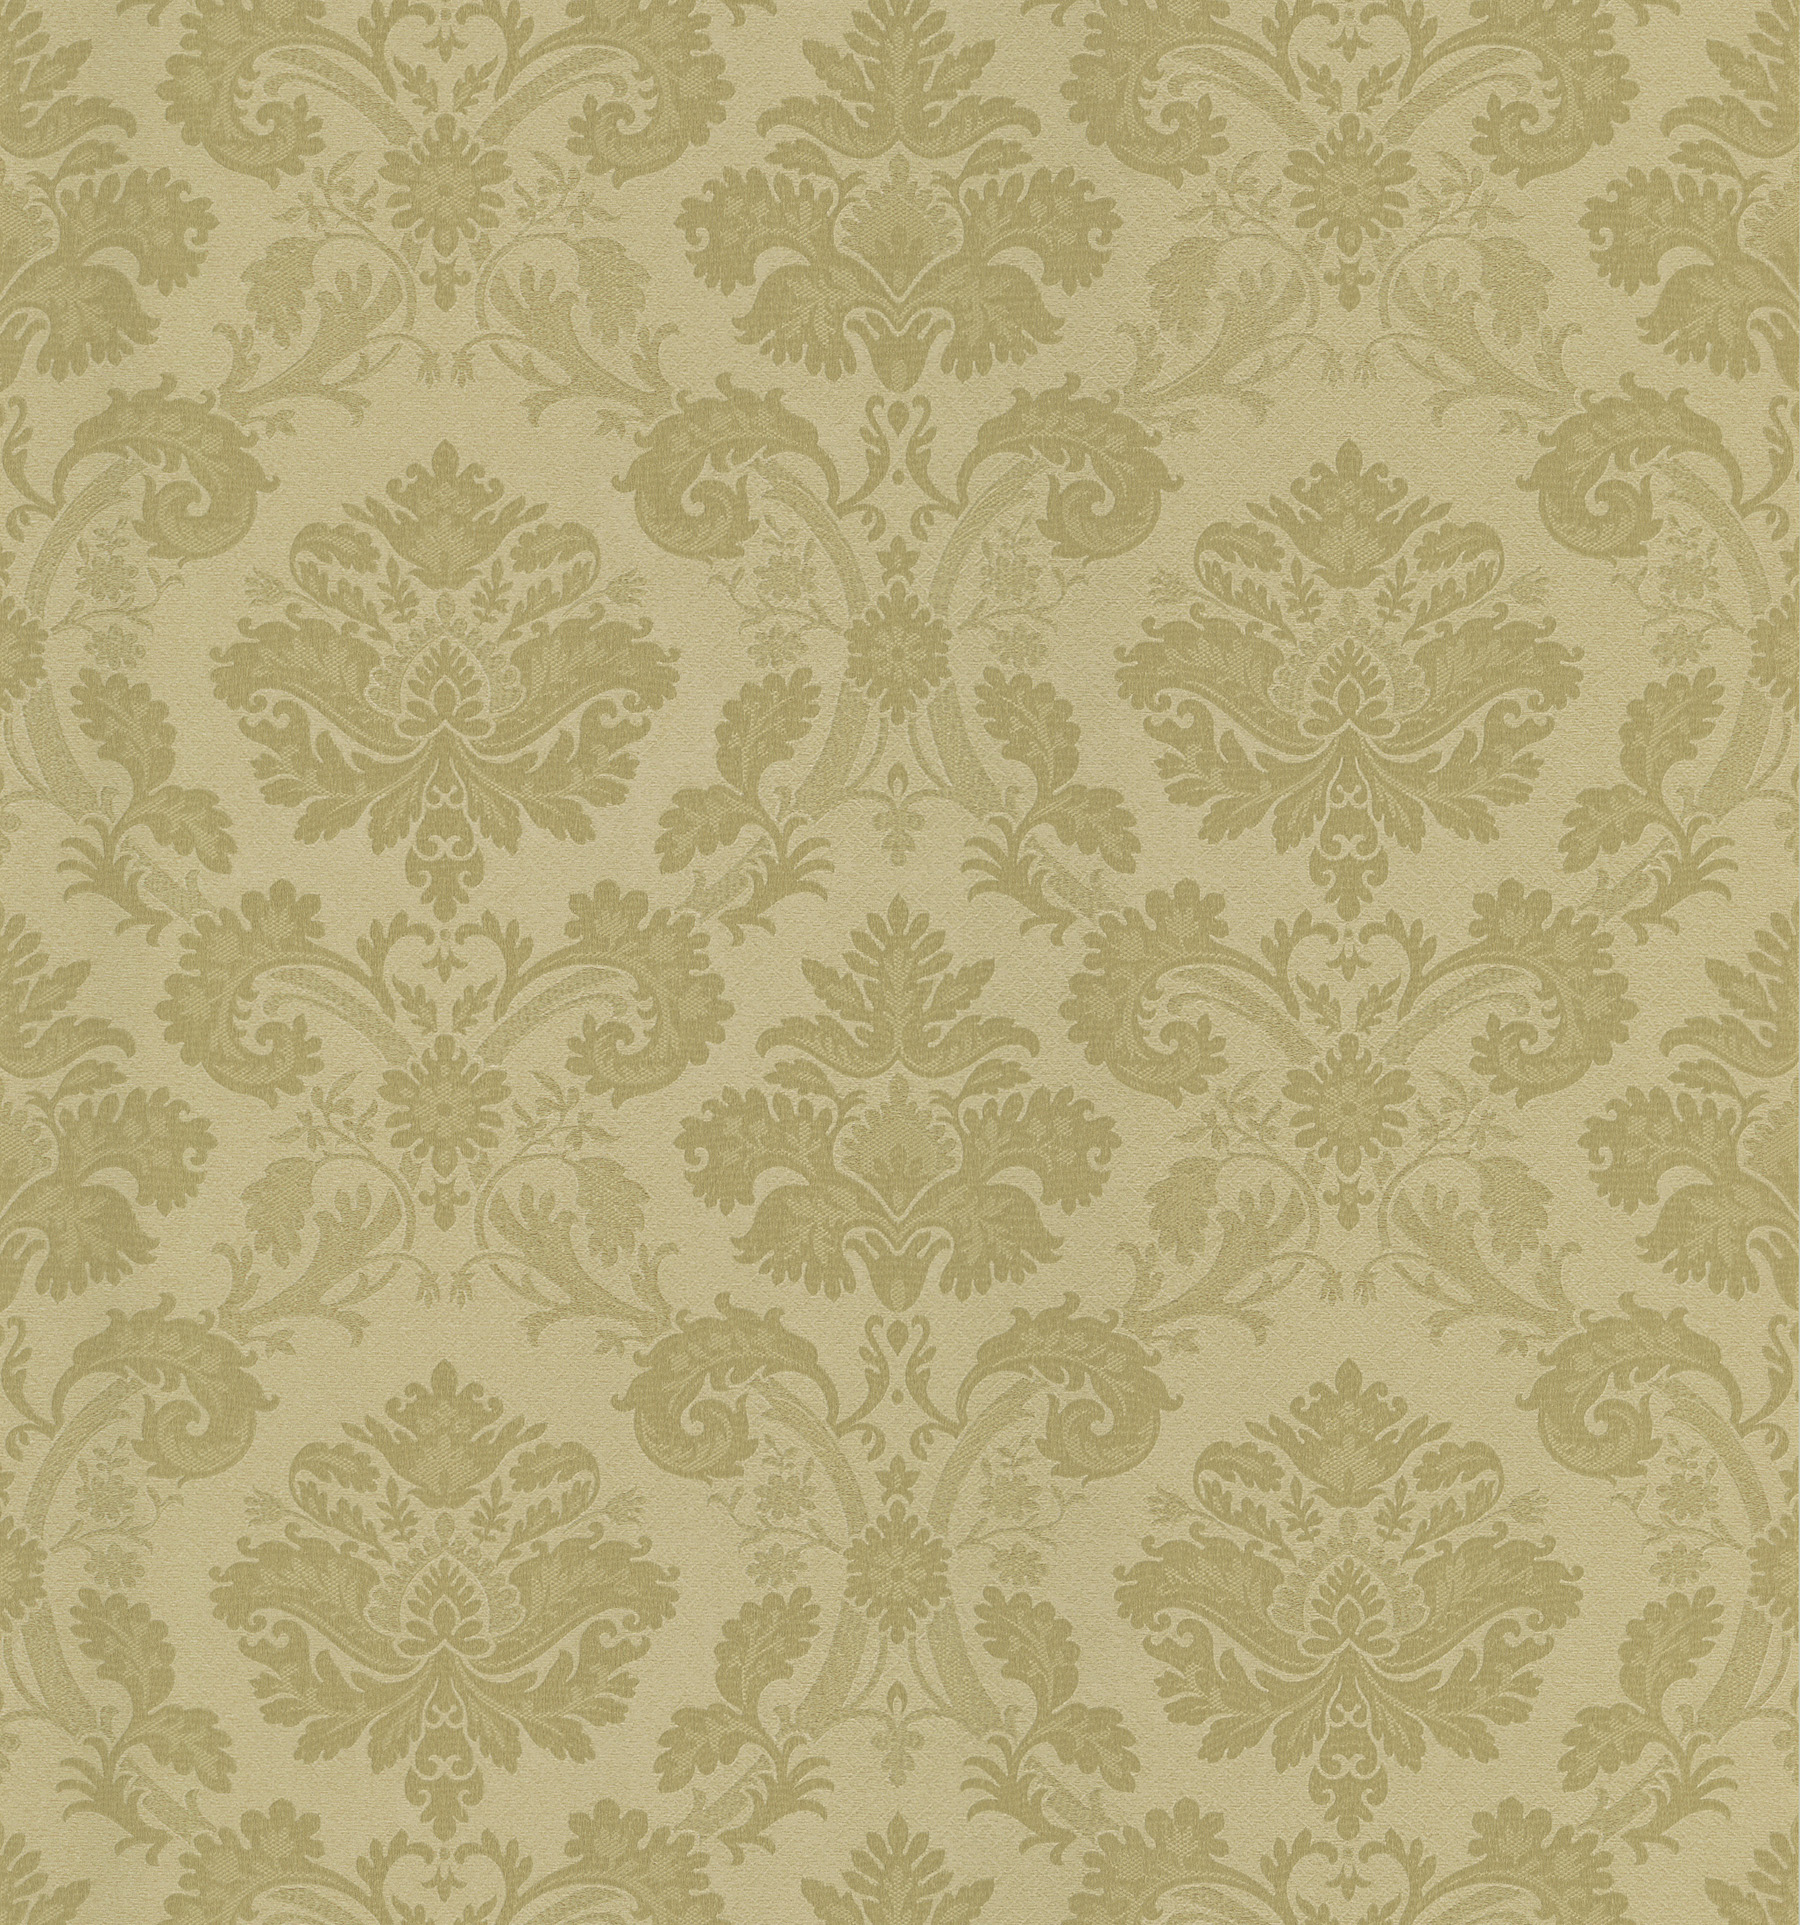 Picture of Bianca Gold Fabric Damask Wallpaper